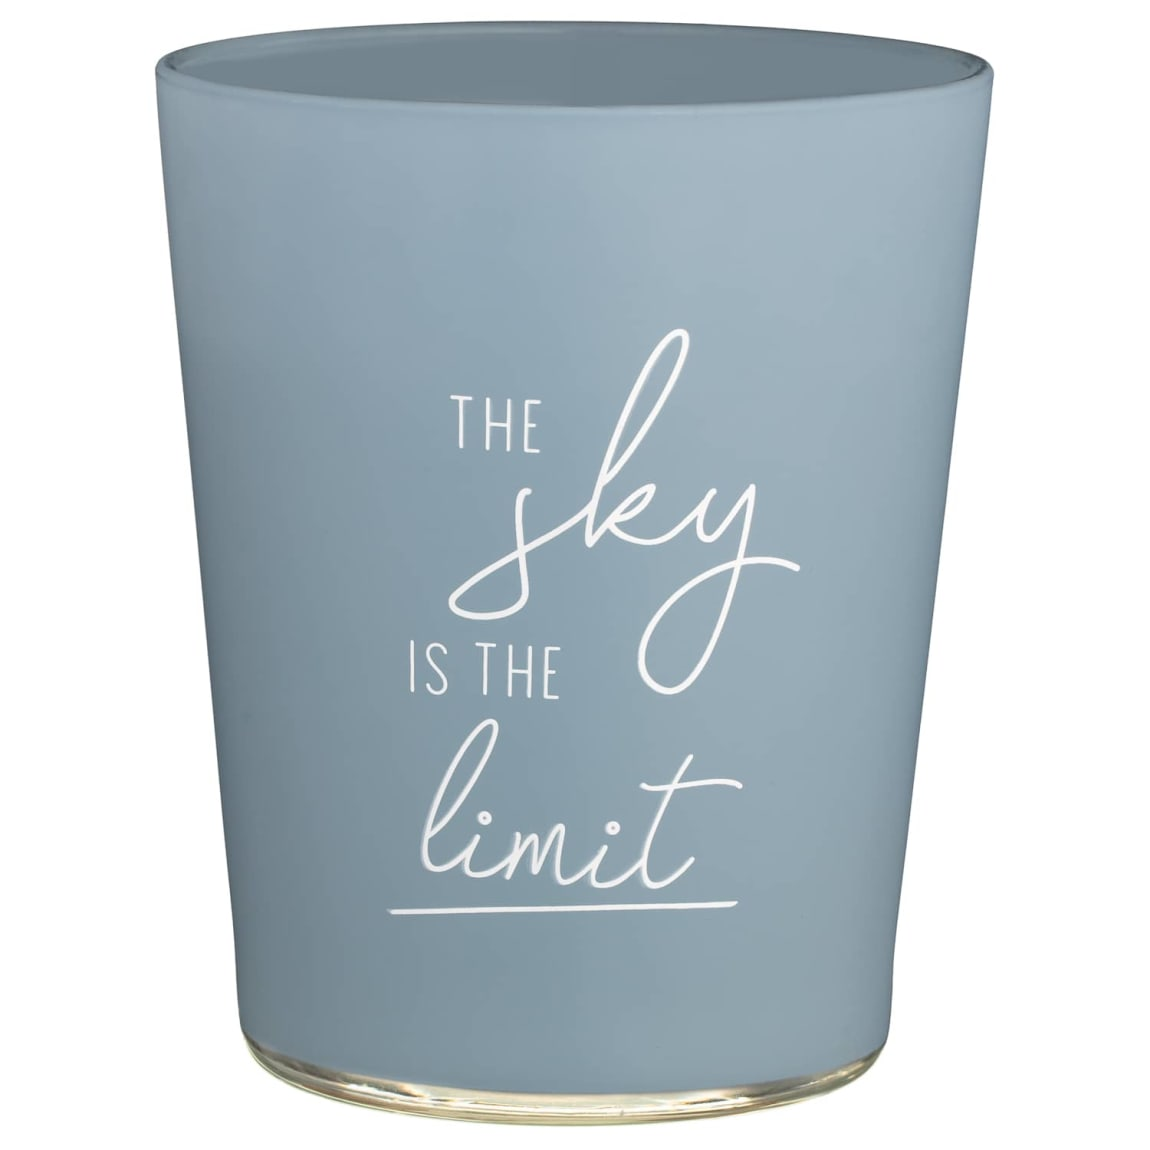 Slogan Candle Jar - Sky is the Limit